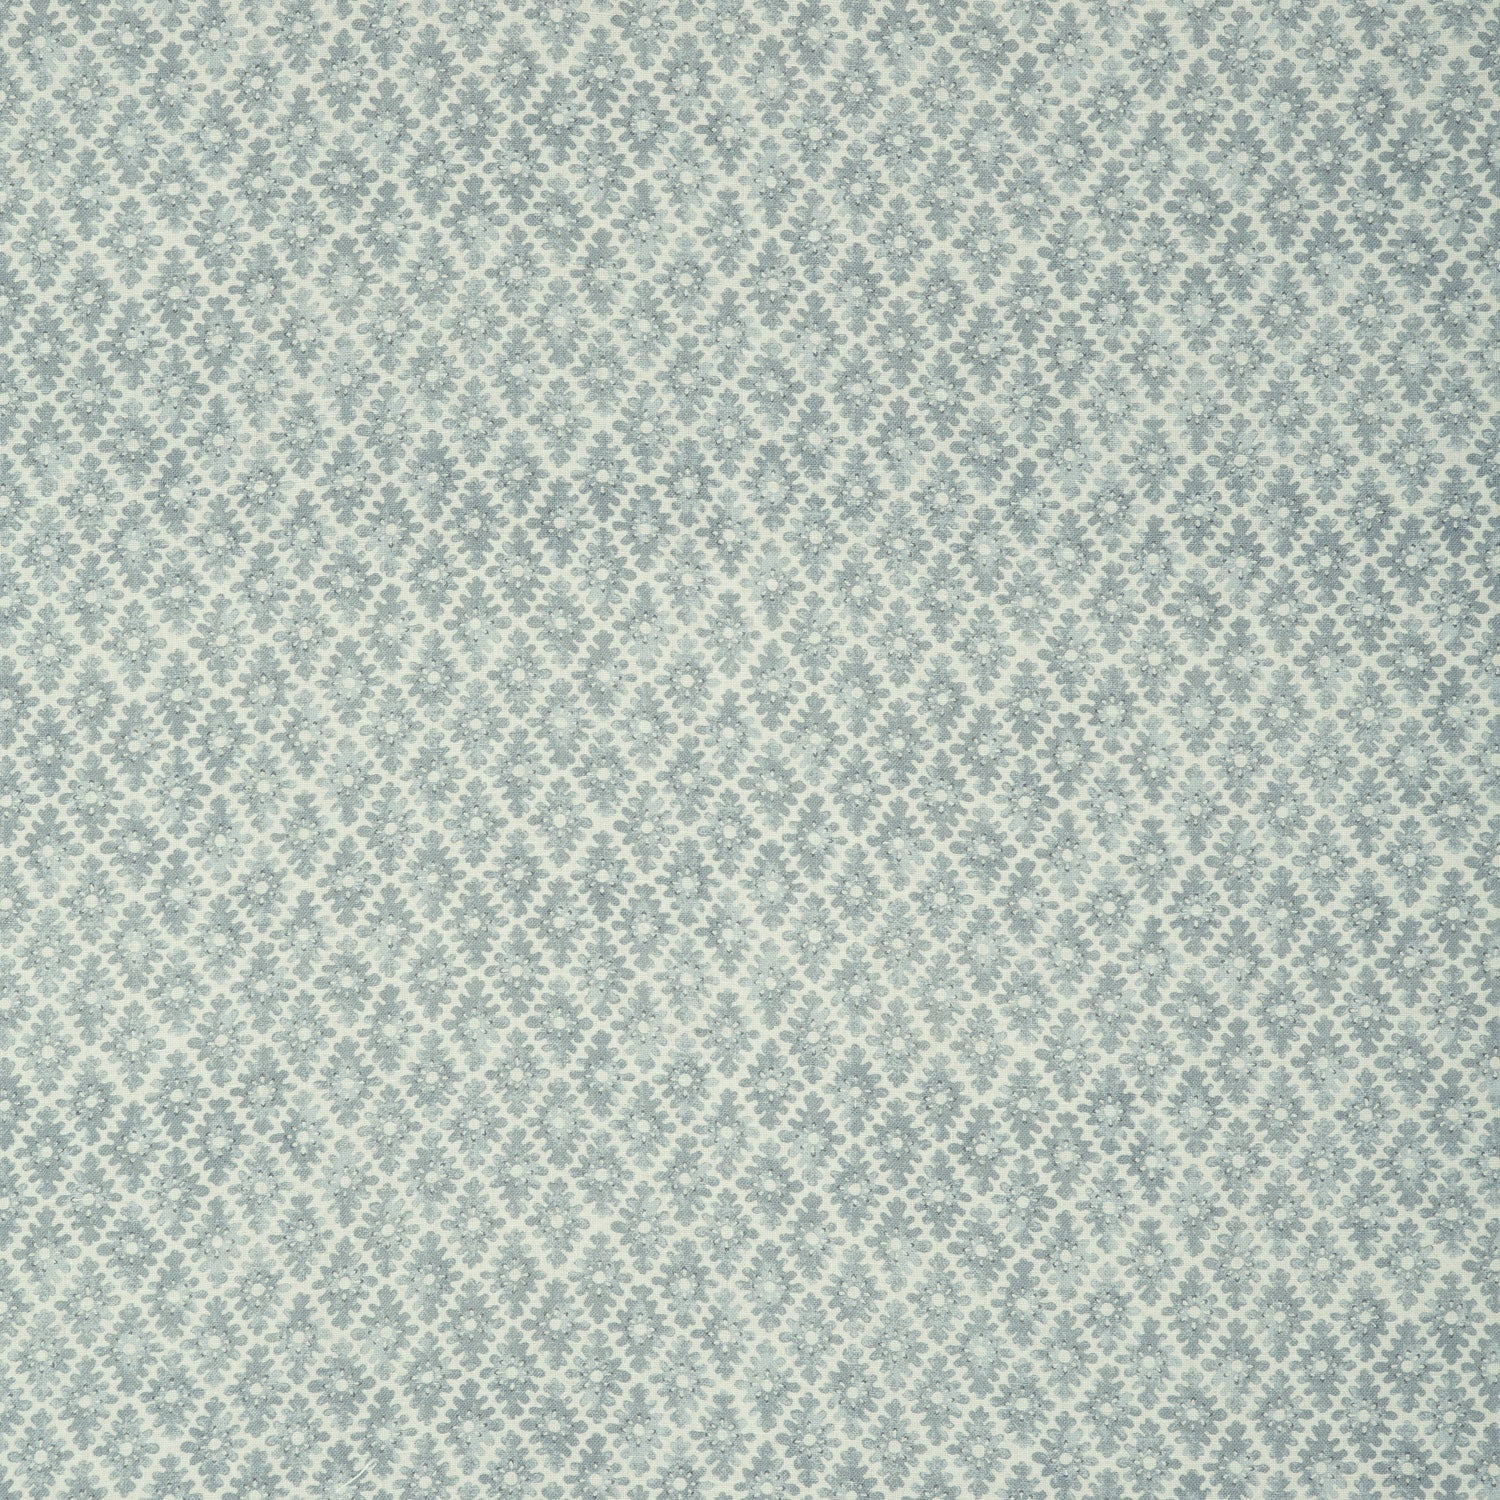 Fabric sample of a sky blue and neutral printed linen fabric for curtains and upholstery